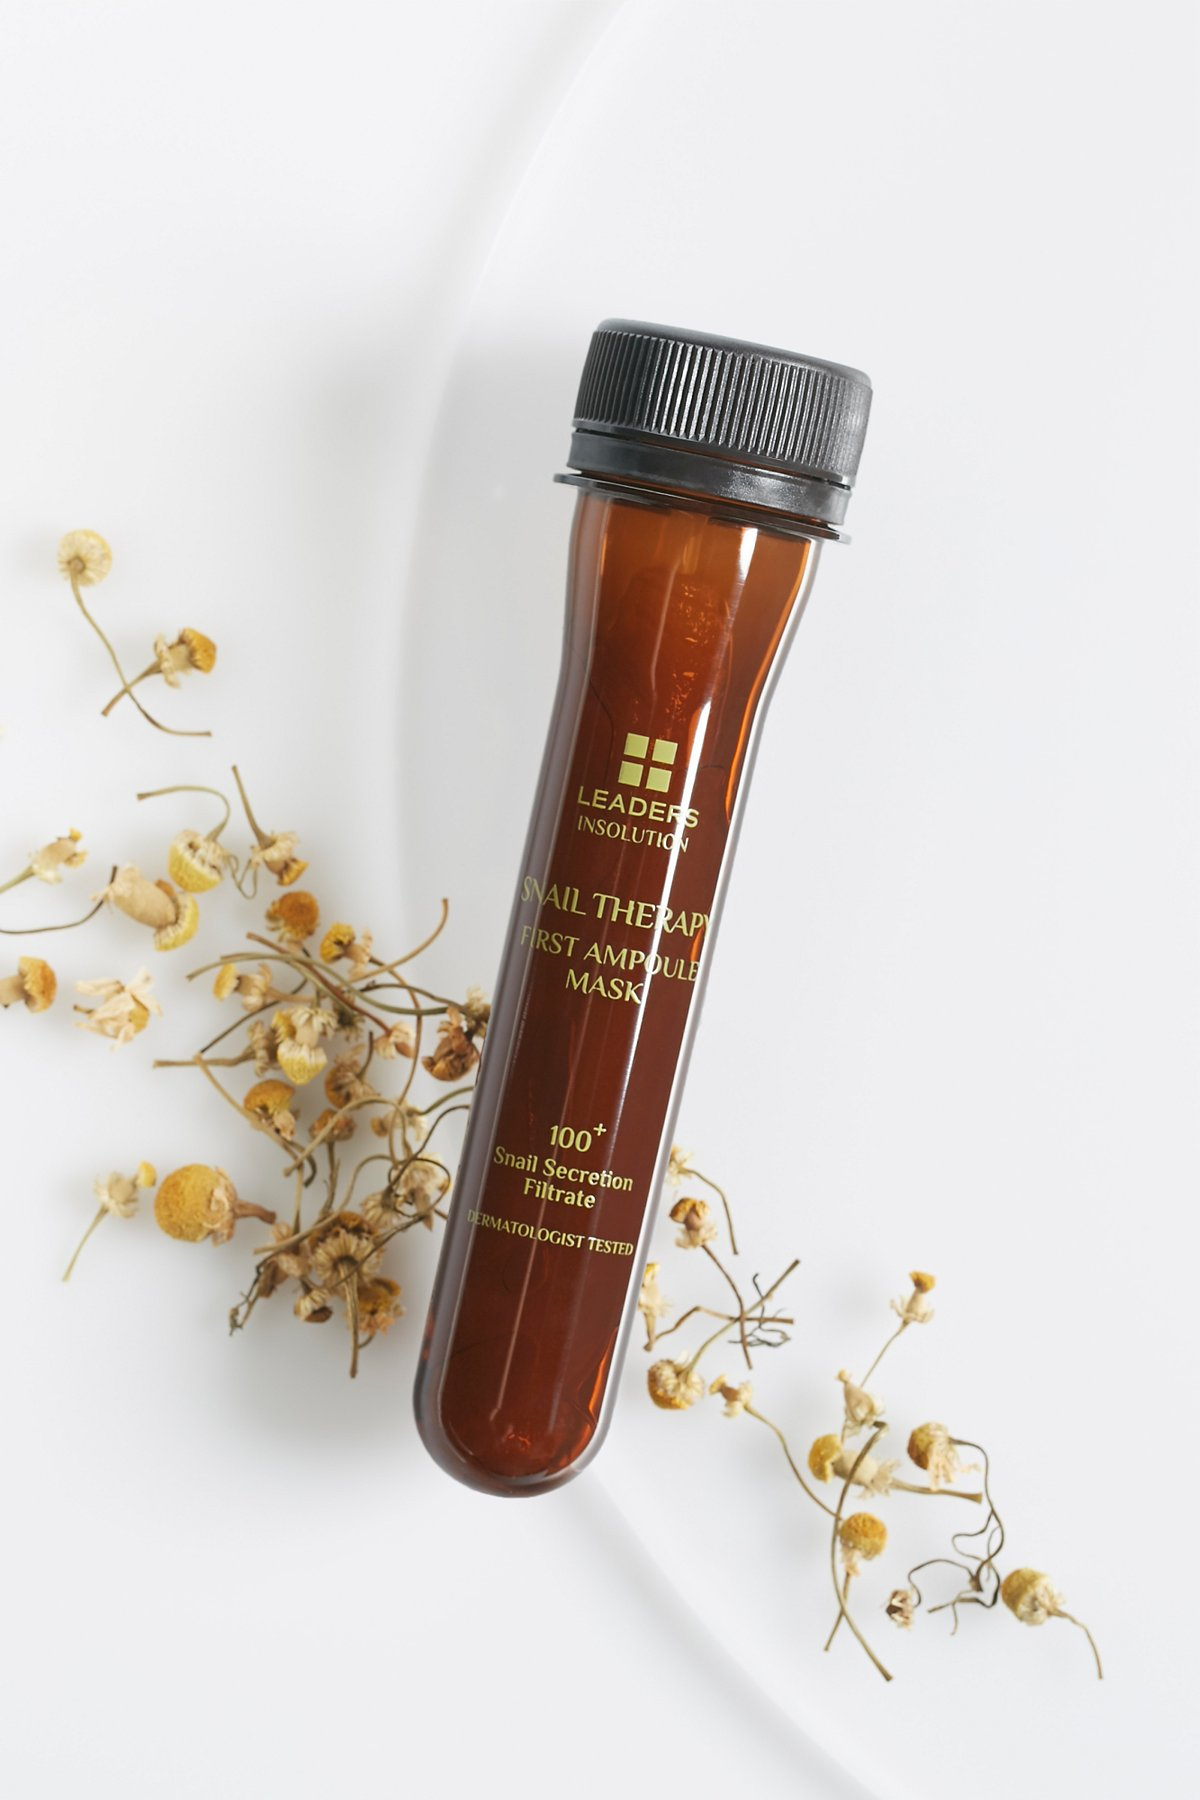 Snail Therapy First Ampoule Mask